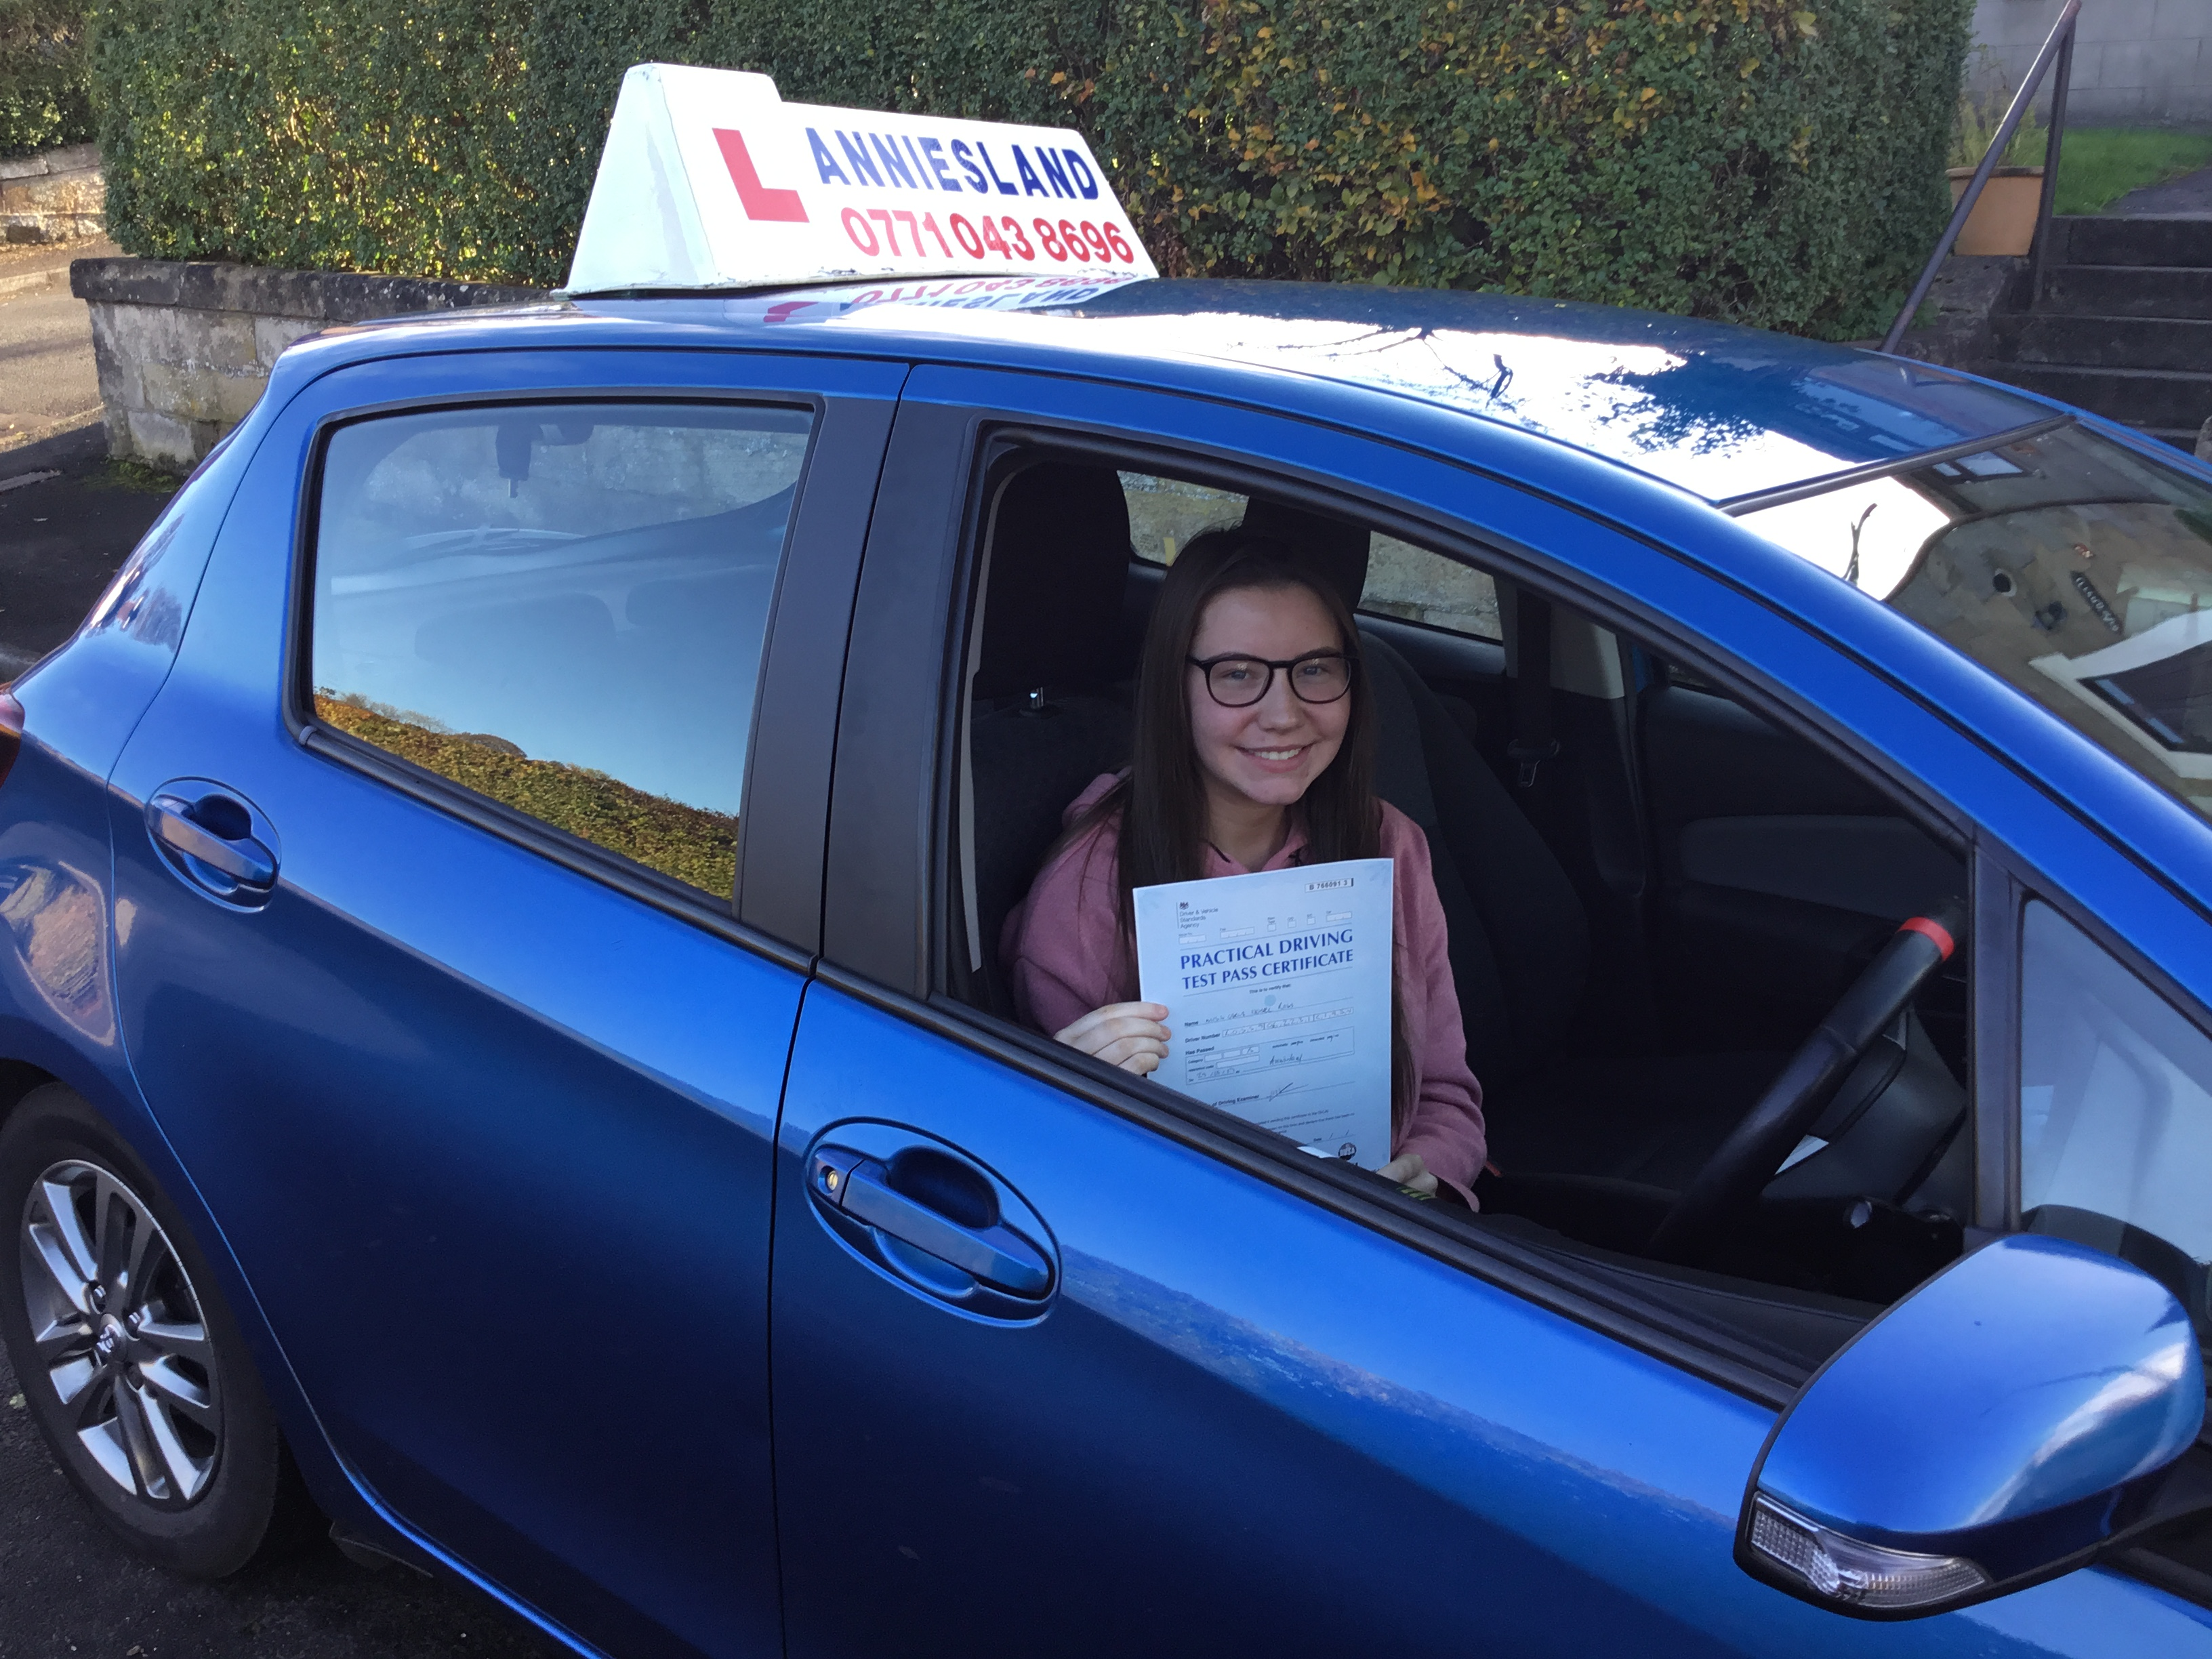 Carla Ross successfully passed their driving test with Anniesland Driving School